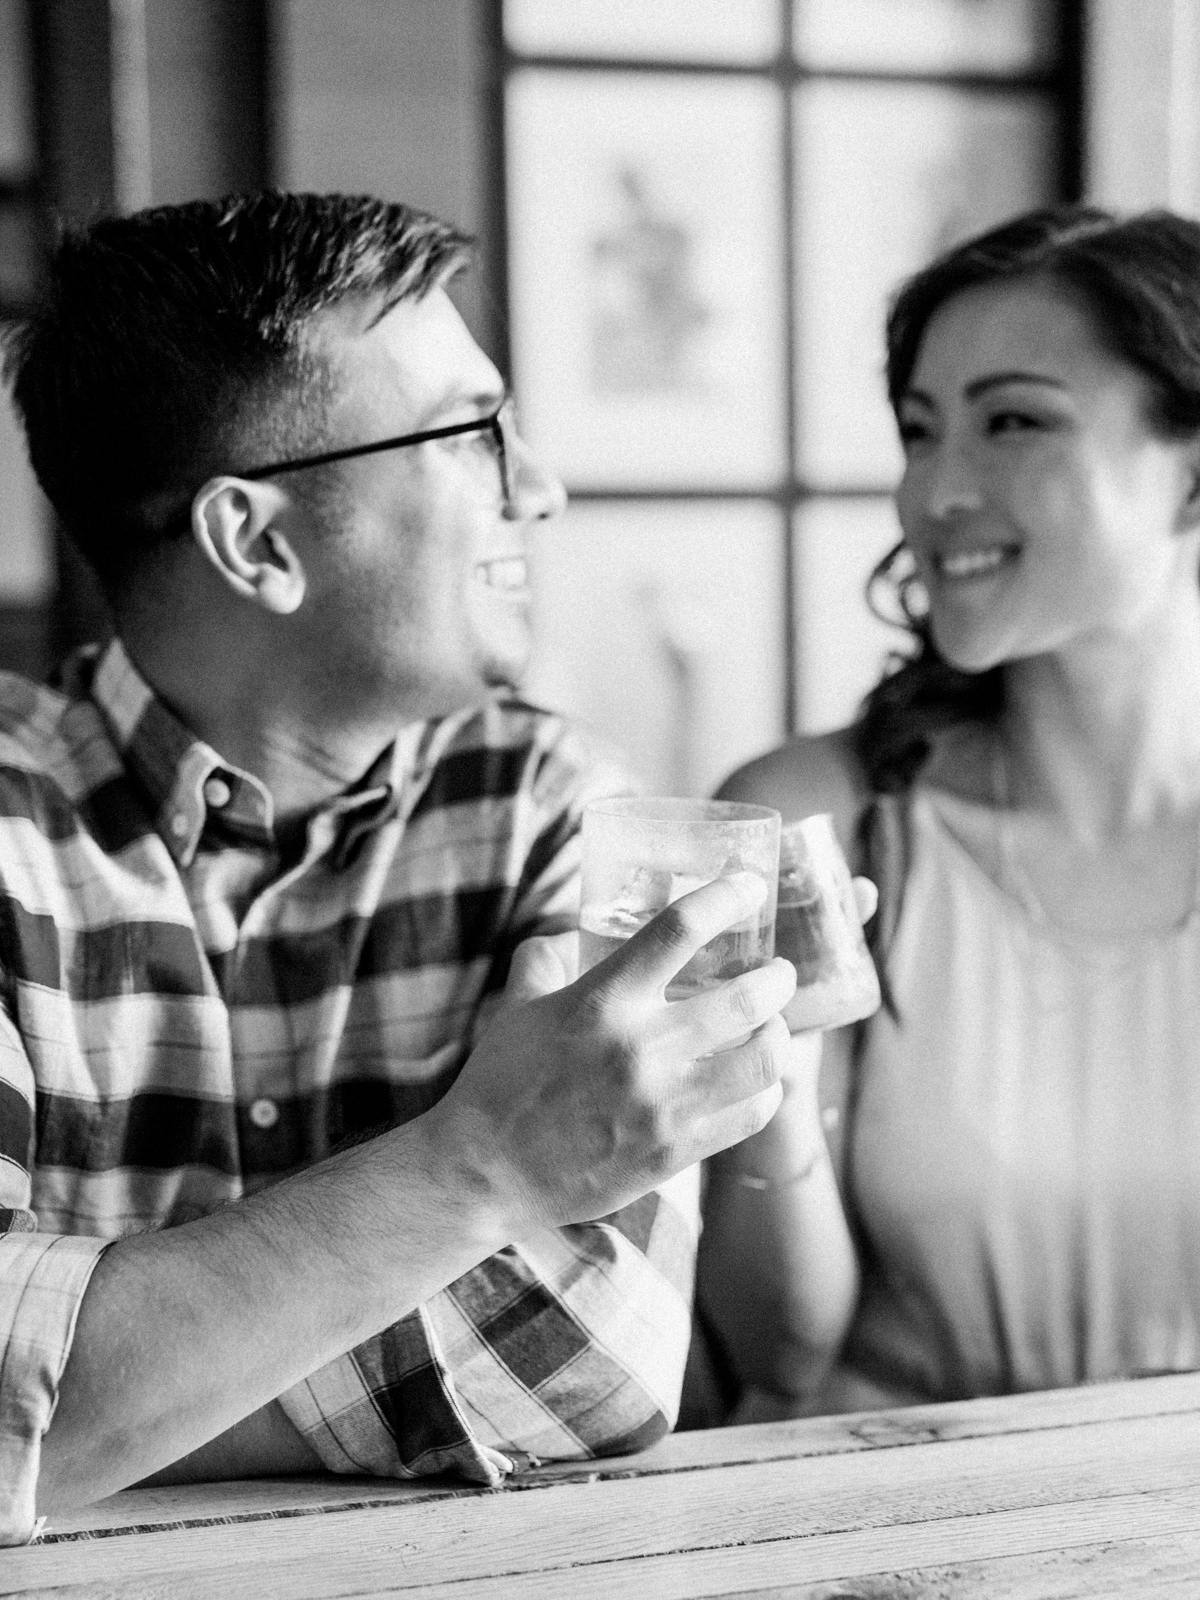 Portland Cafe Engagement Session Film Photographer Jenny Soi